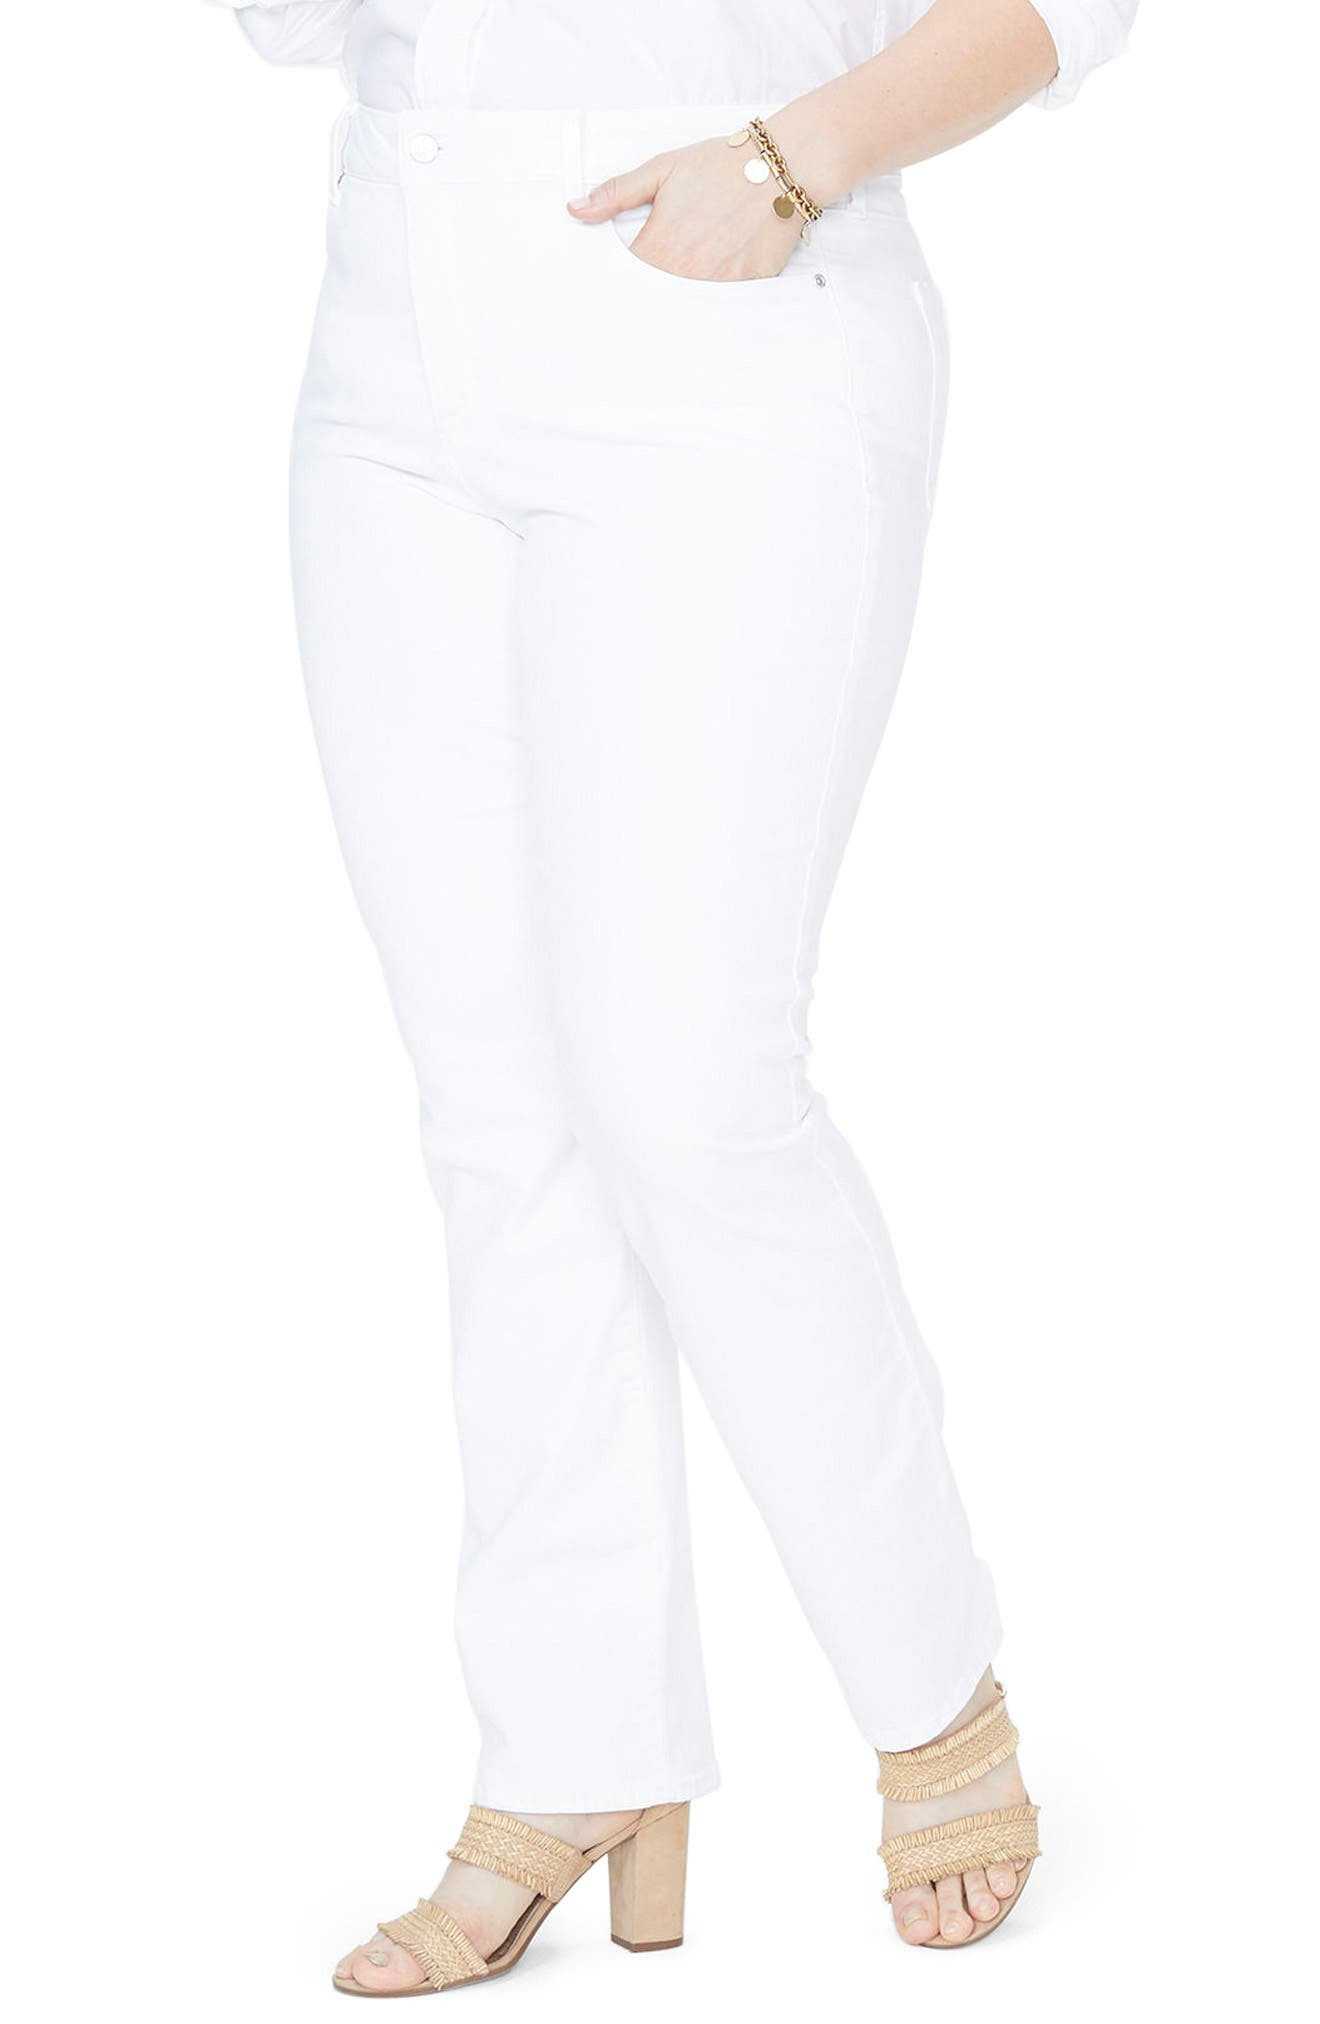 Marilyn High Rise Stretch Straight Leg Jeans,                             Main thumbnail 1, color,                             OPTIC WHITE